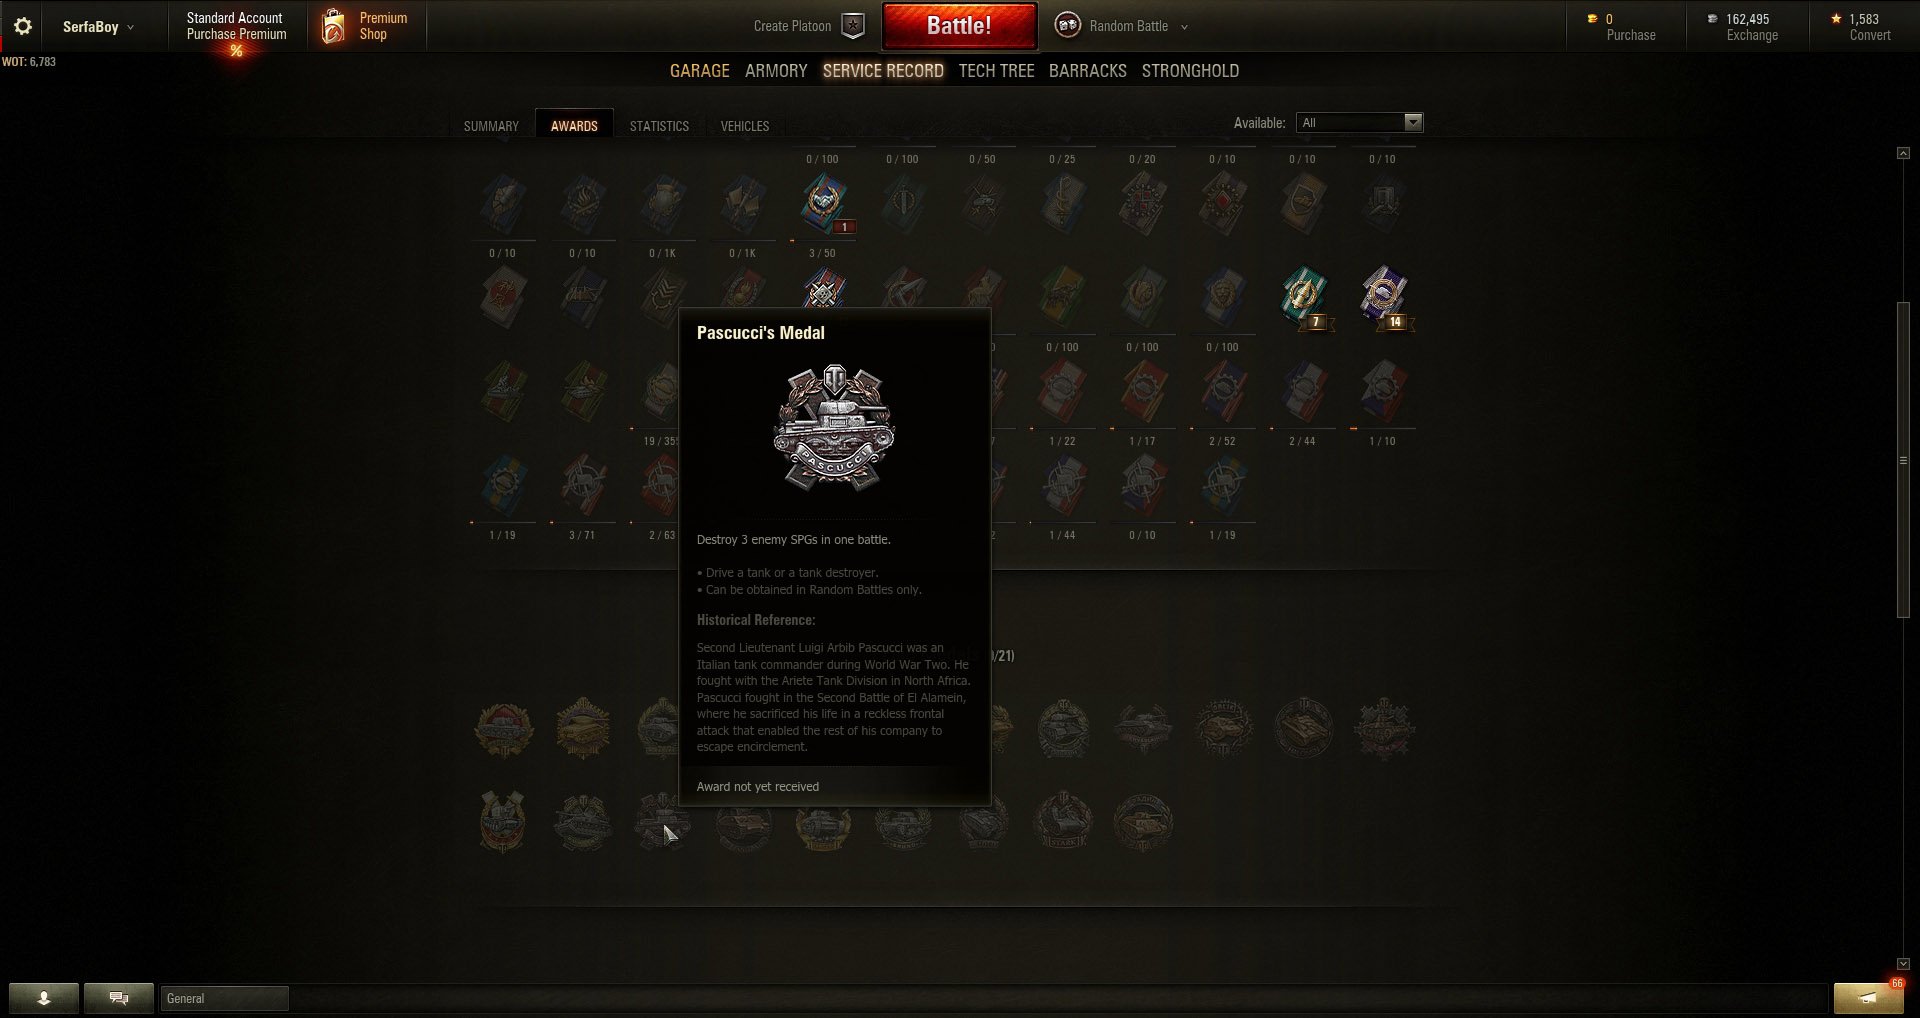 Pascucci's Medal requires players to push through the enemy lines and destroy three enemy SPGs in a single battle.